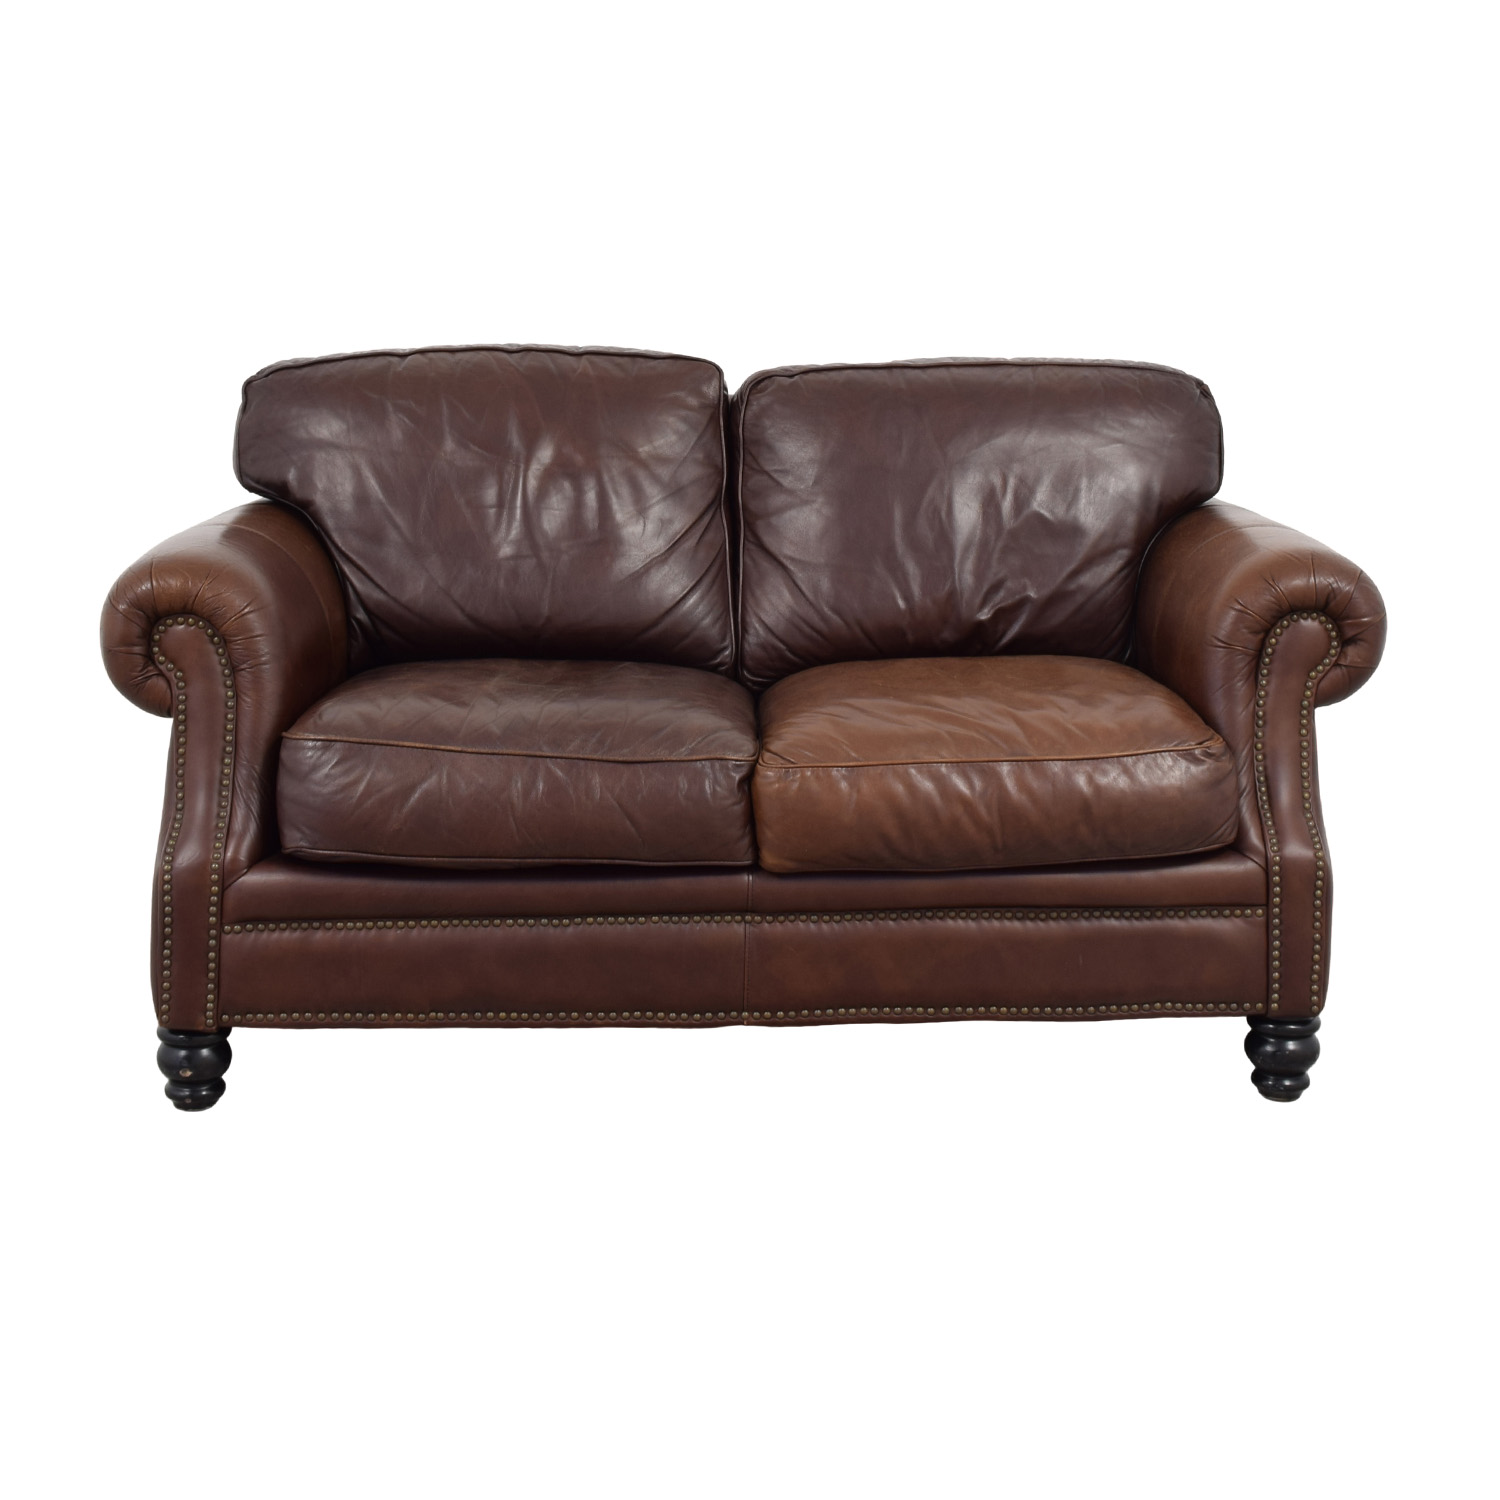 Couches Leather Sale Near Me